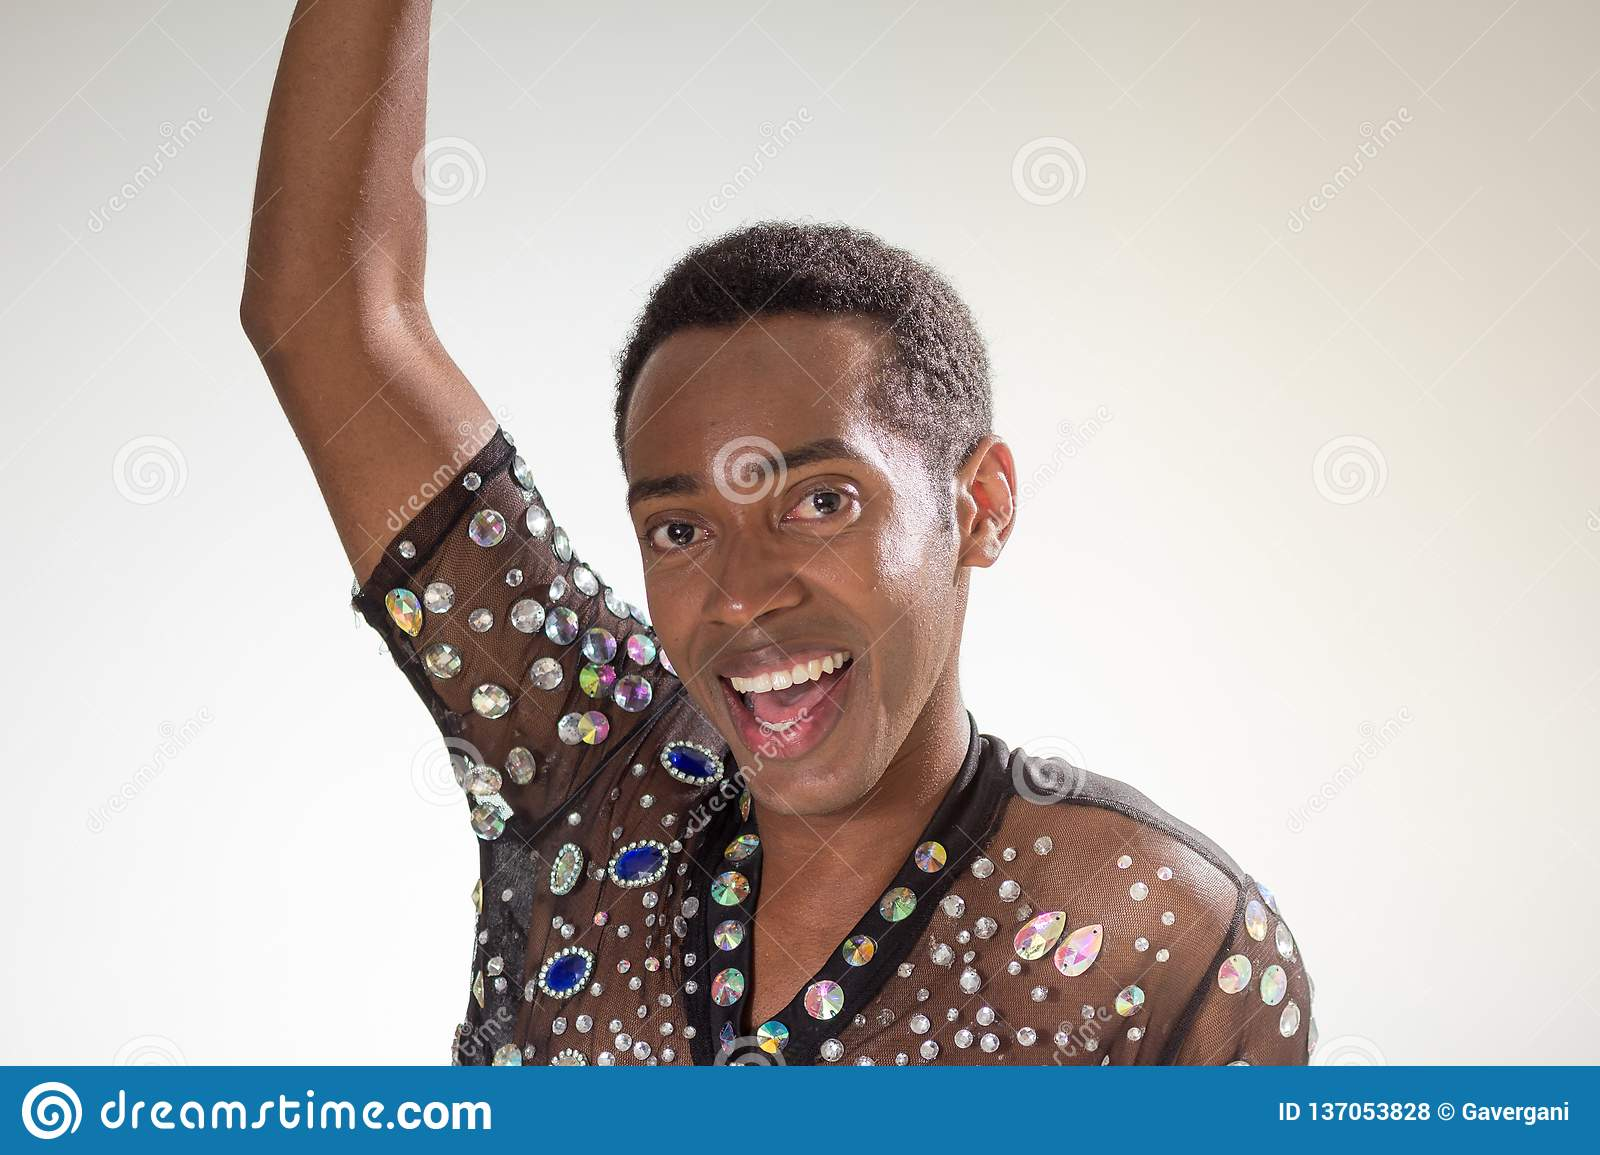 Carnaval Brazil. Face of african american man wearing costume. Bright background. Party concept, celebration and festival